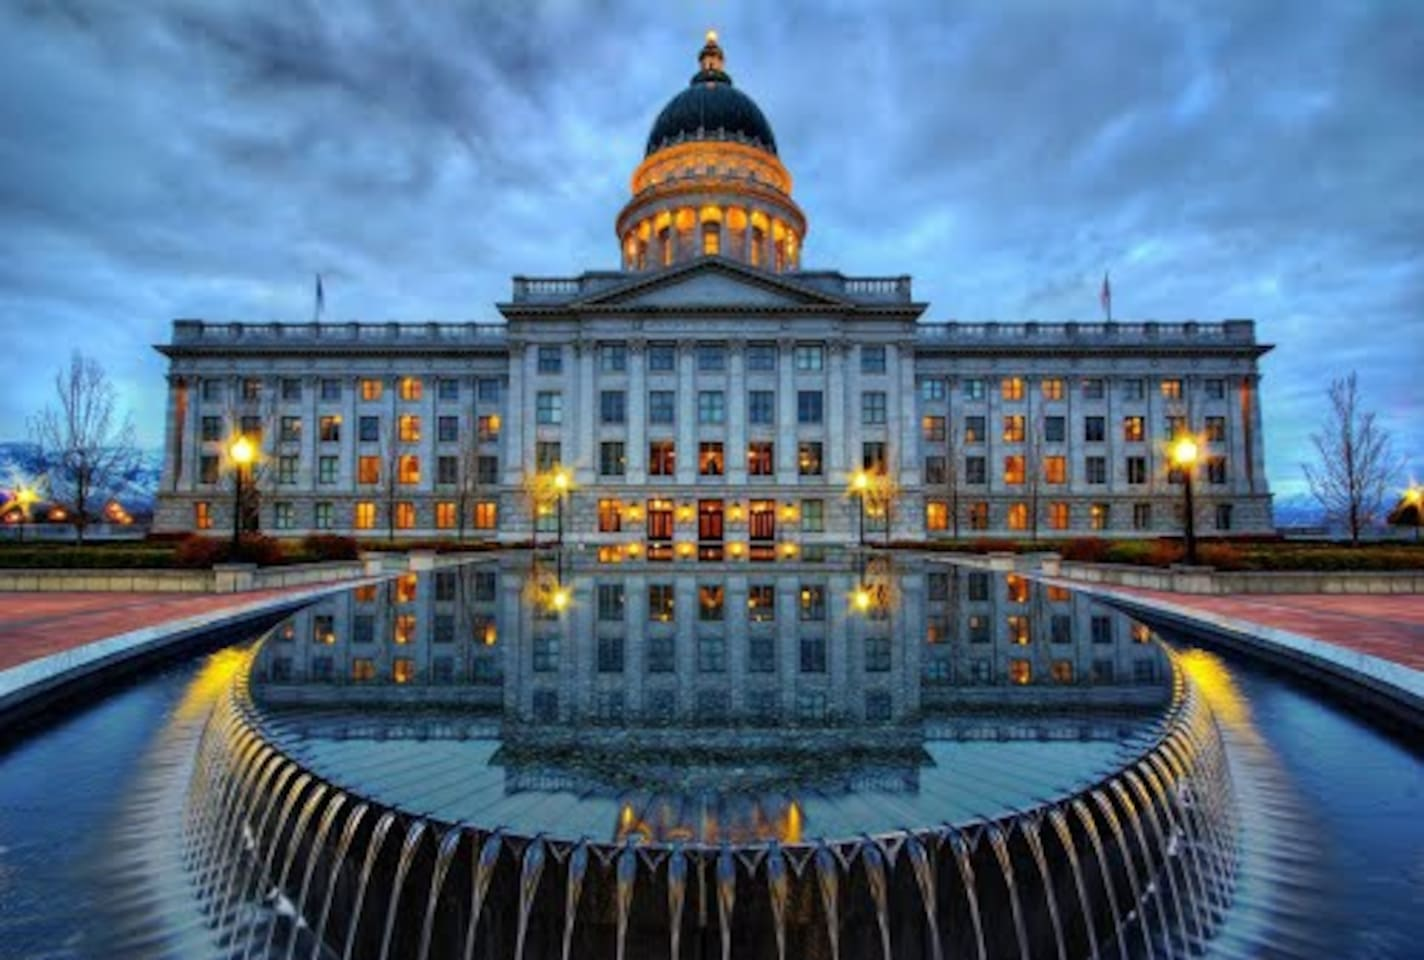 Walk across the street to visit our State Capitol Building.